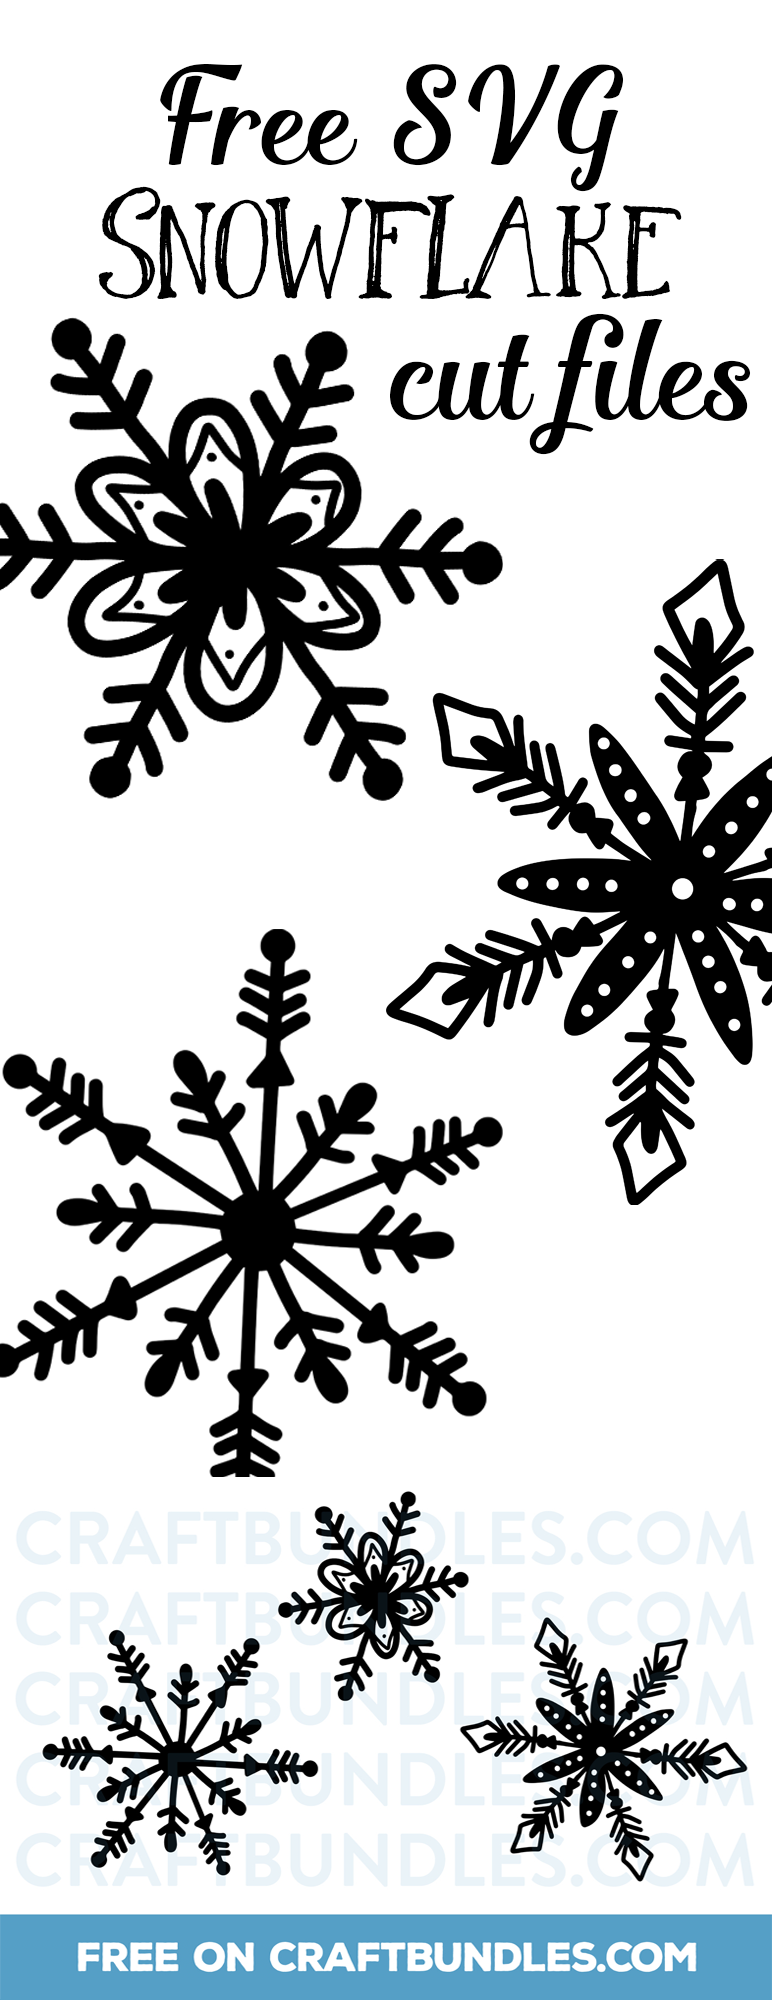 svg snowflake #1019, Download drawings